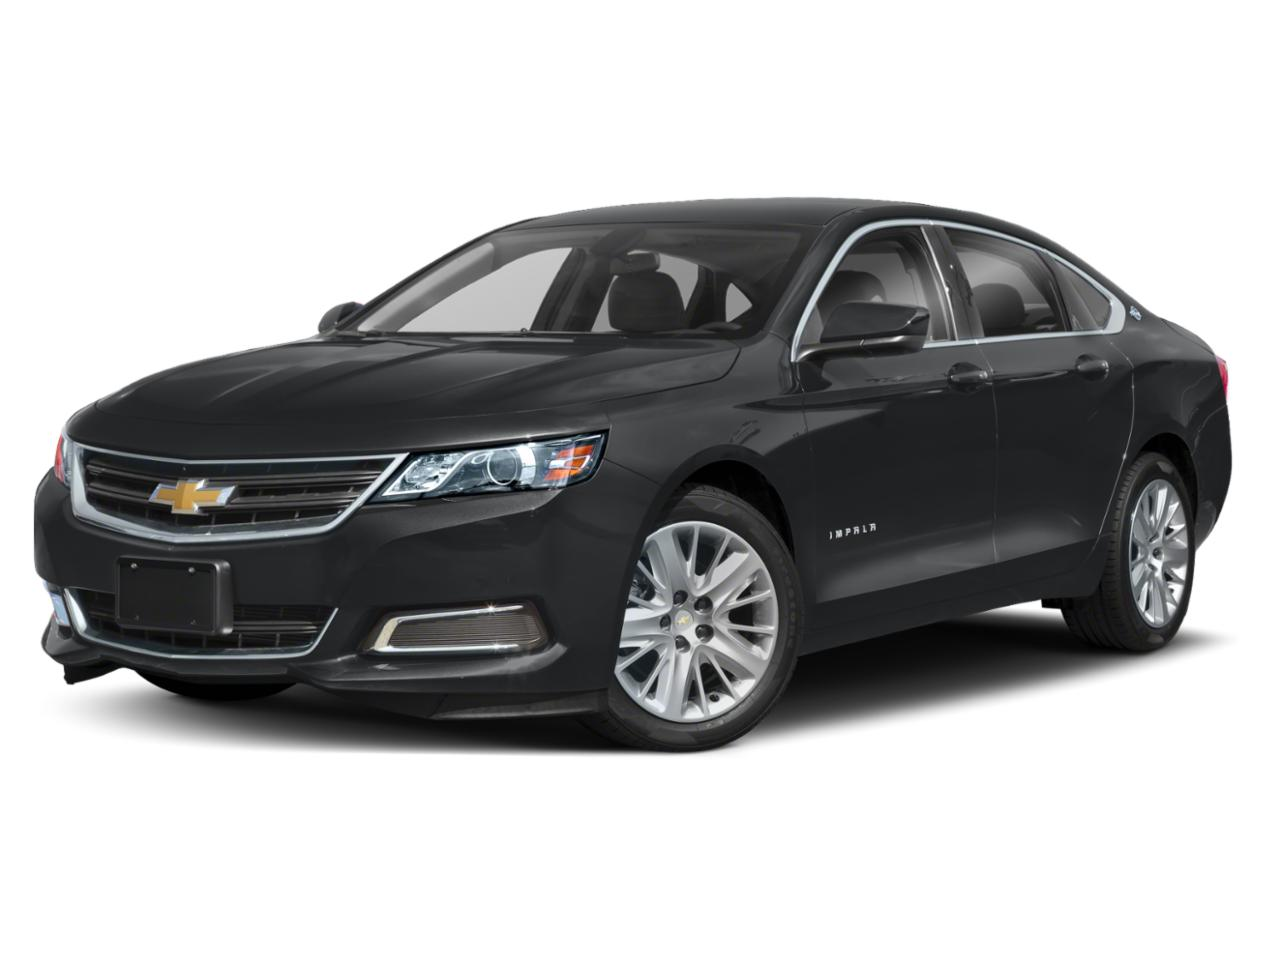 2019 Chevrolet Impala Vehicle Photo in Nashua, NH 03060